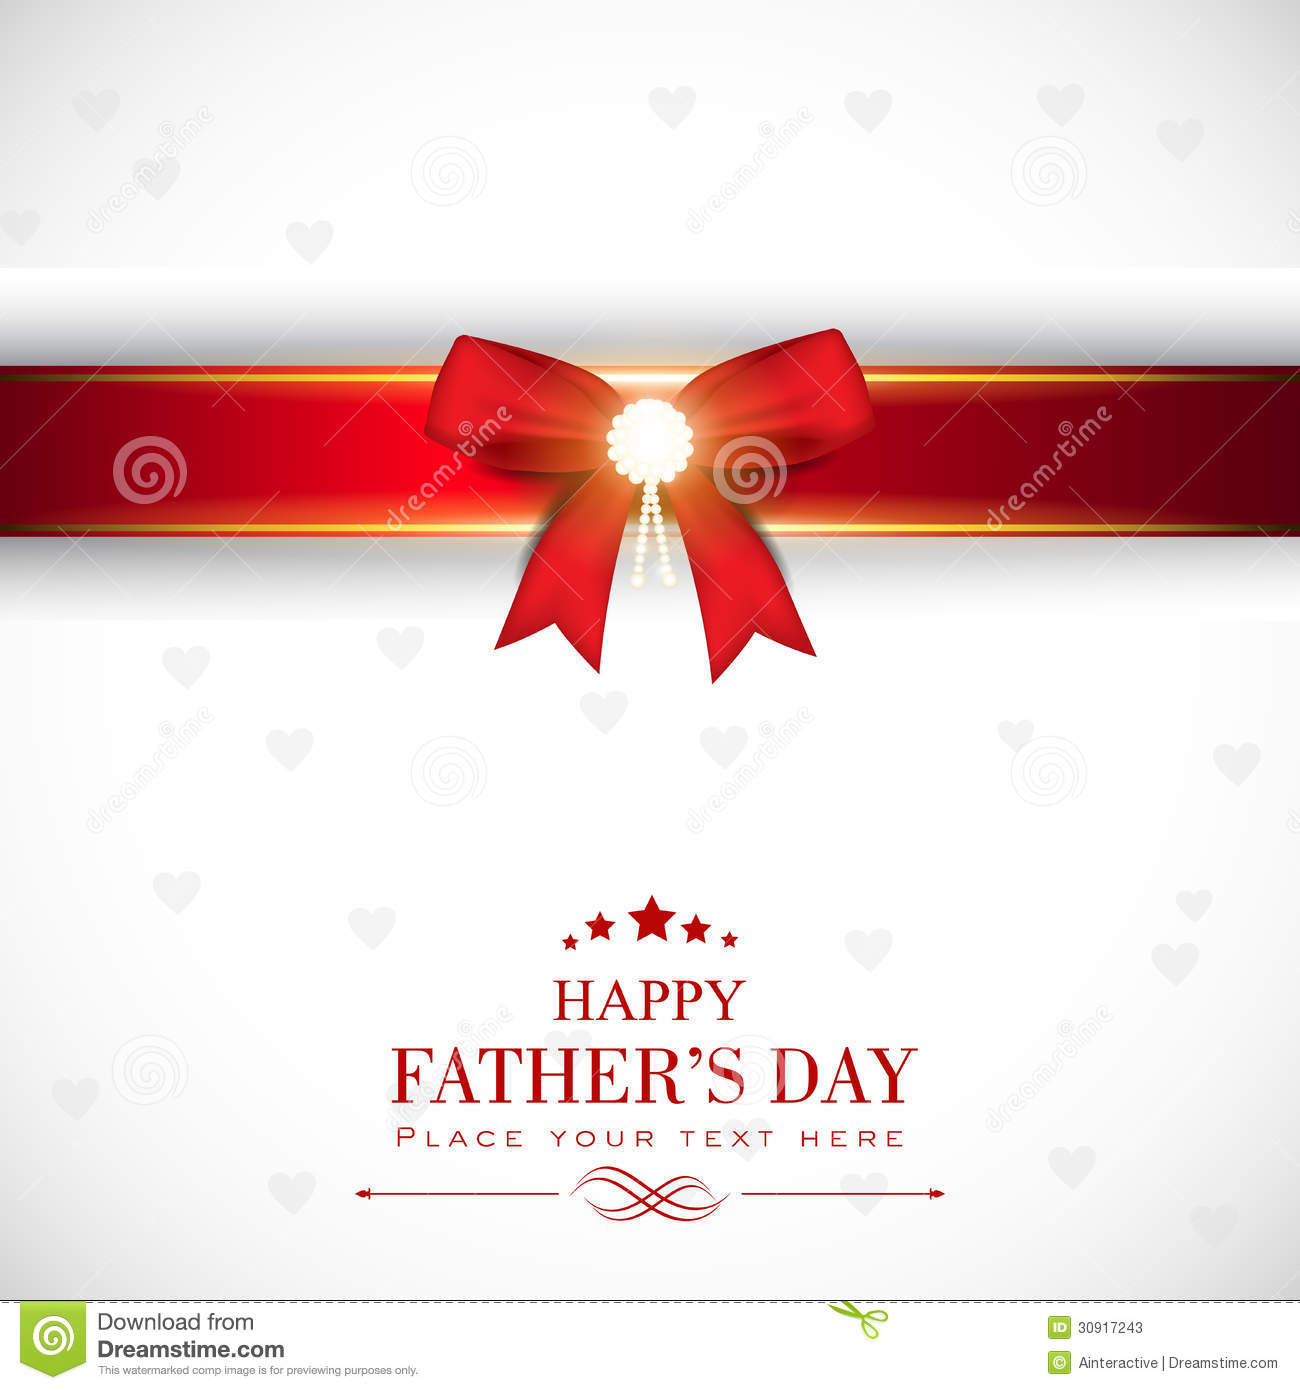 Happy Fathers Day Concept.